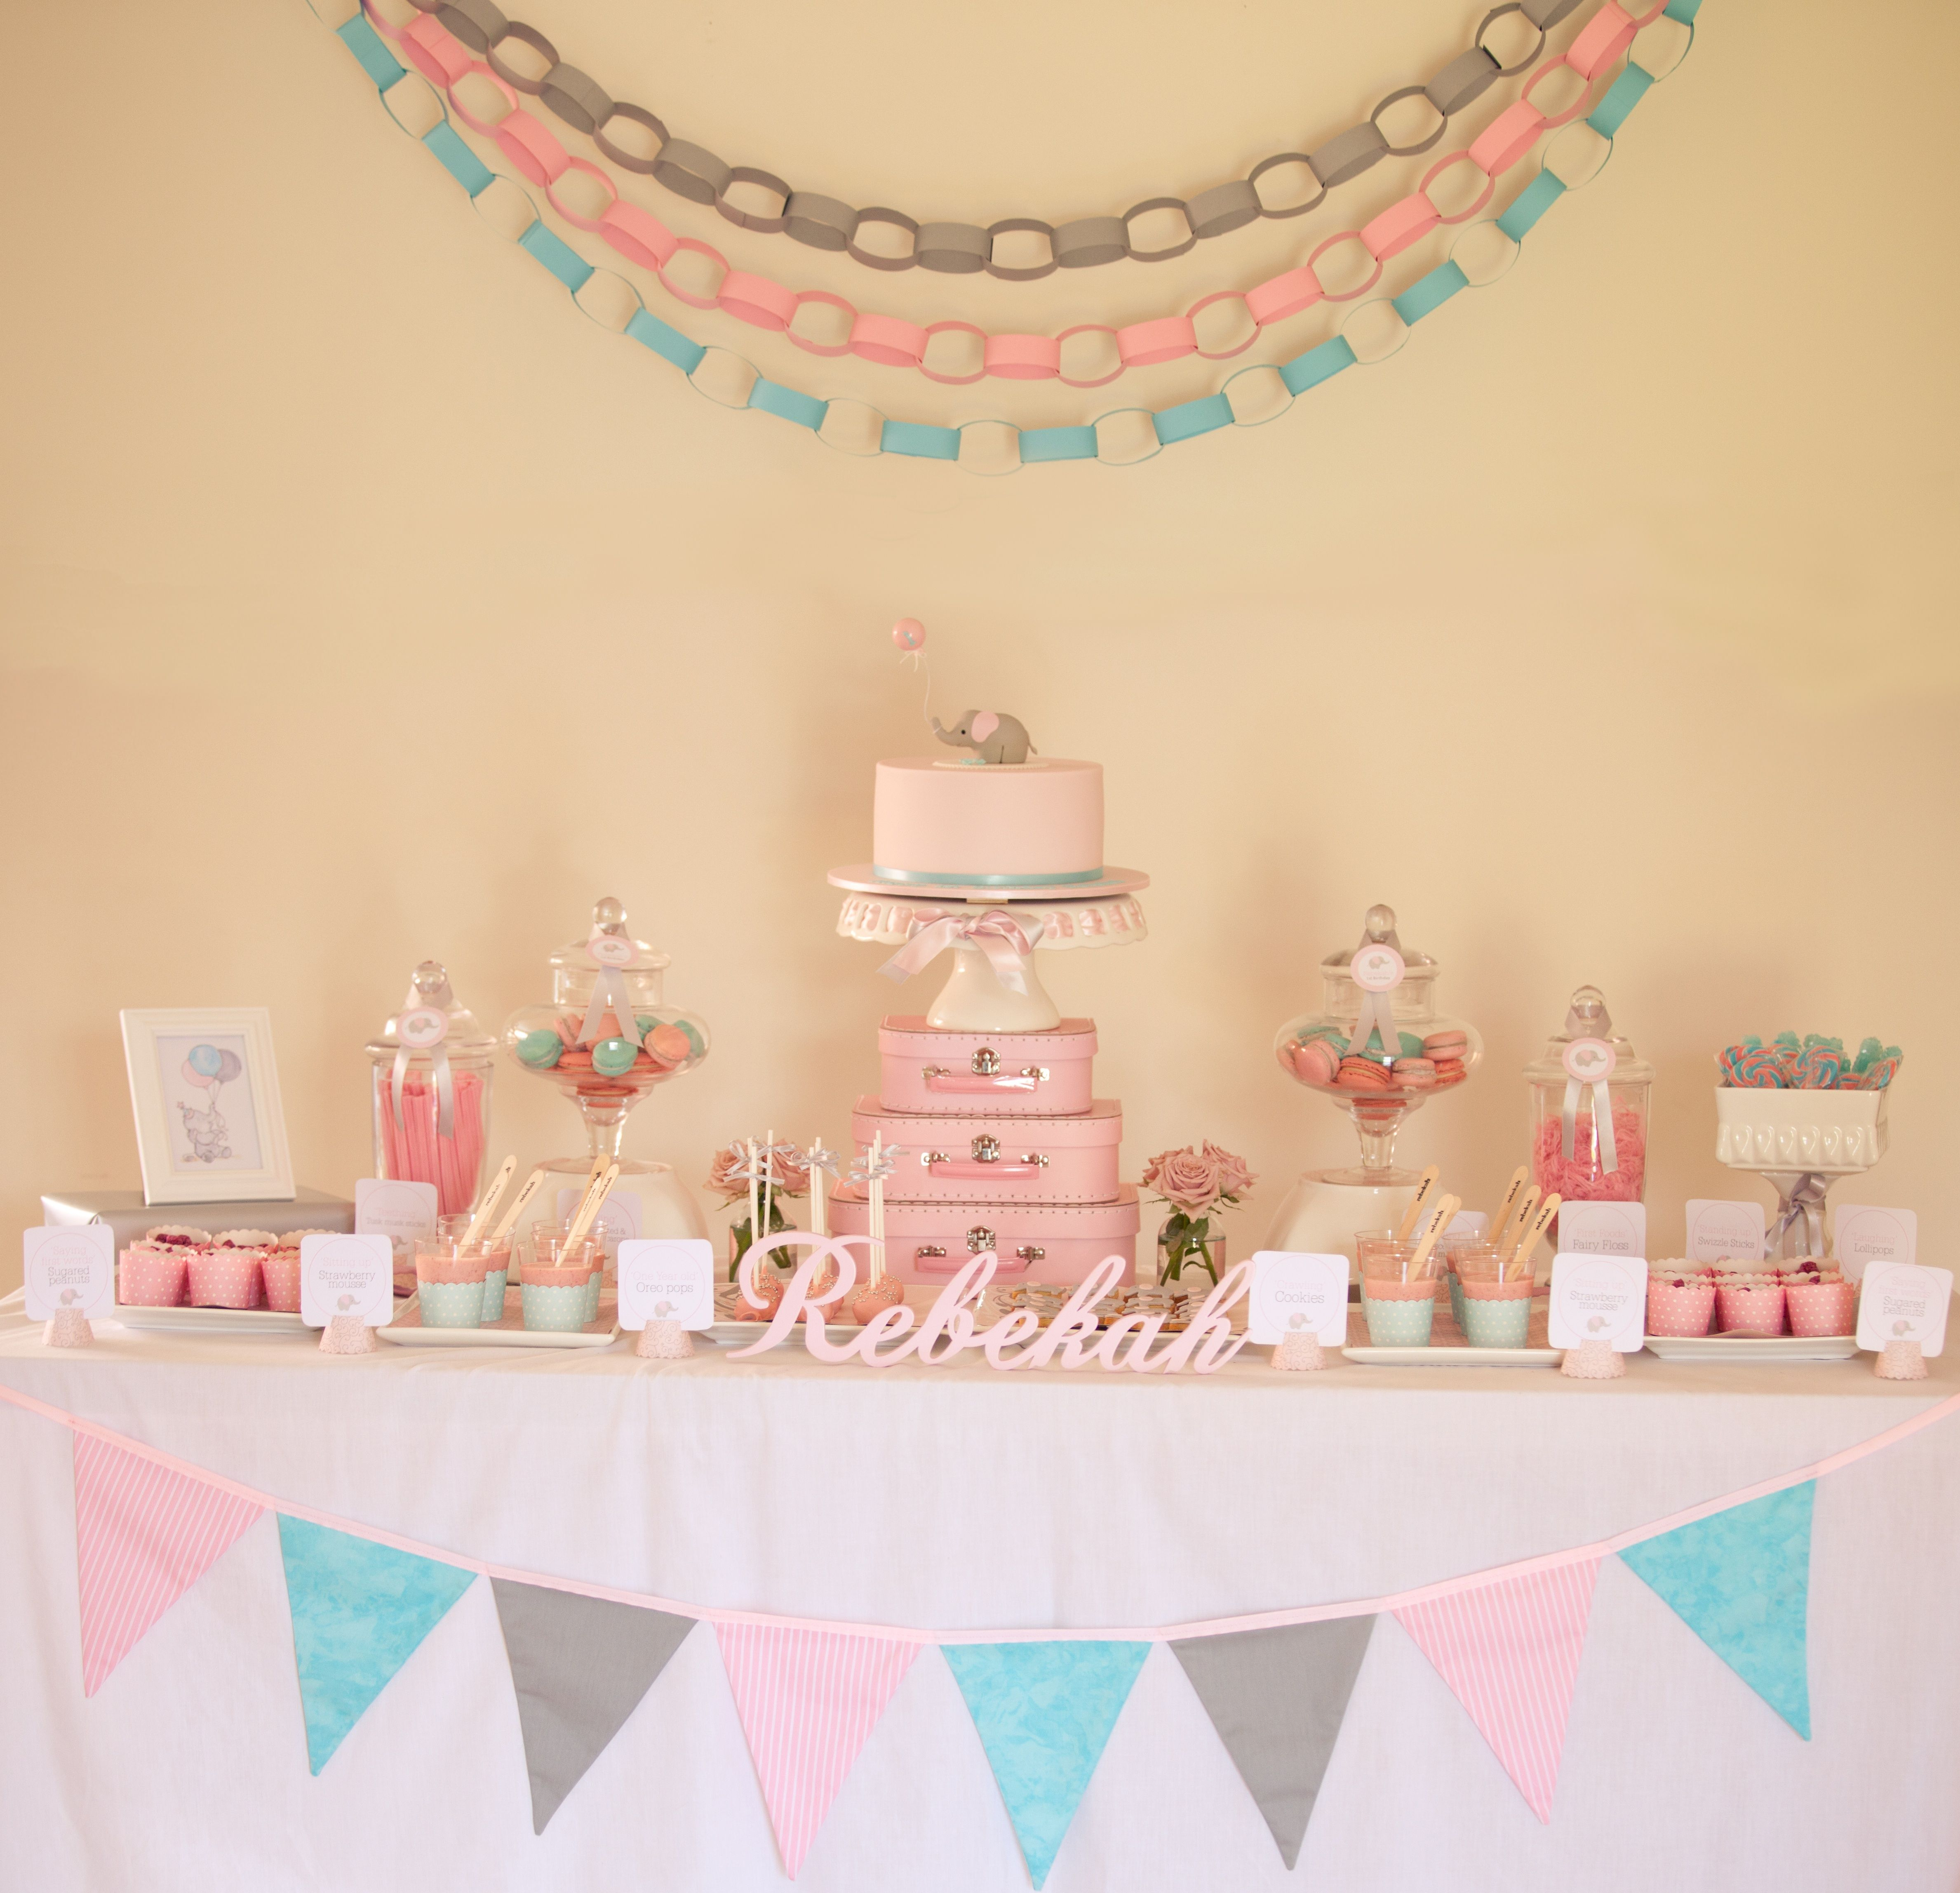 Love the paper chains and bunting boy theme colors of course